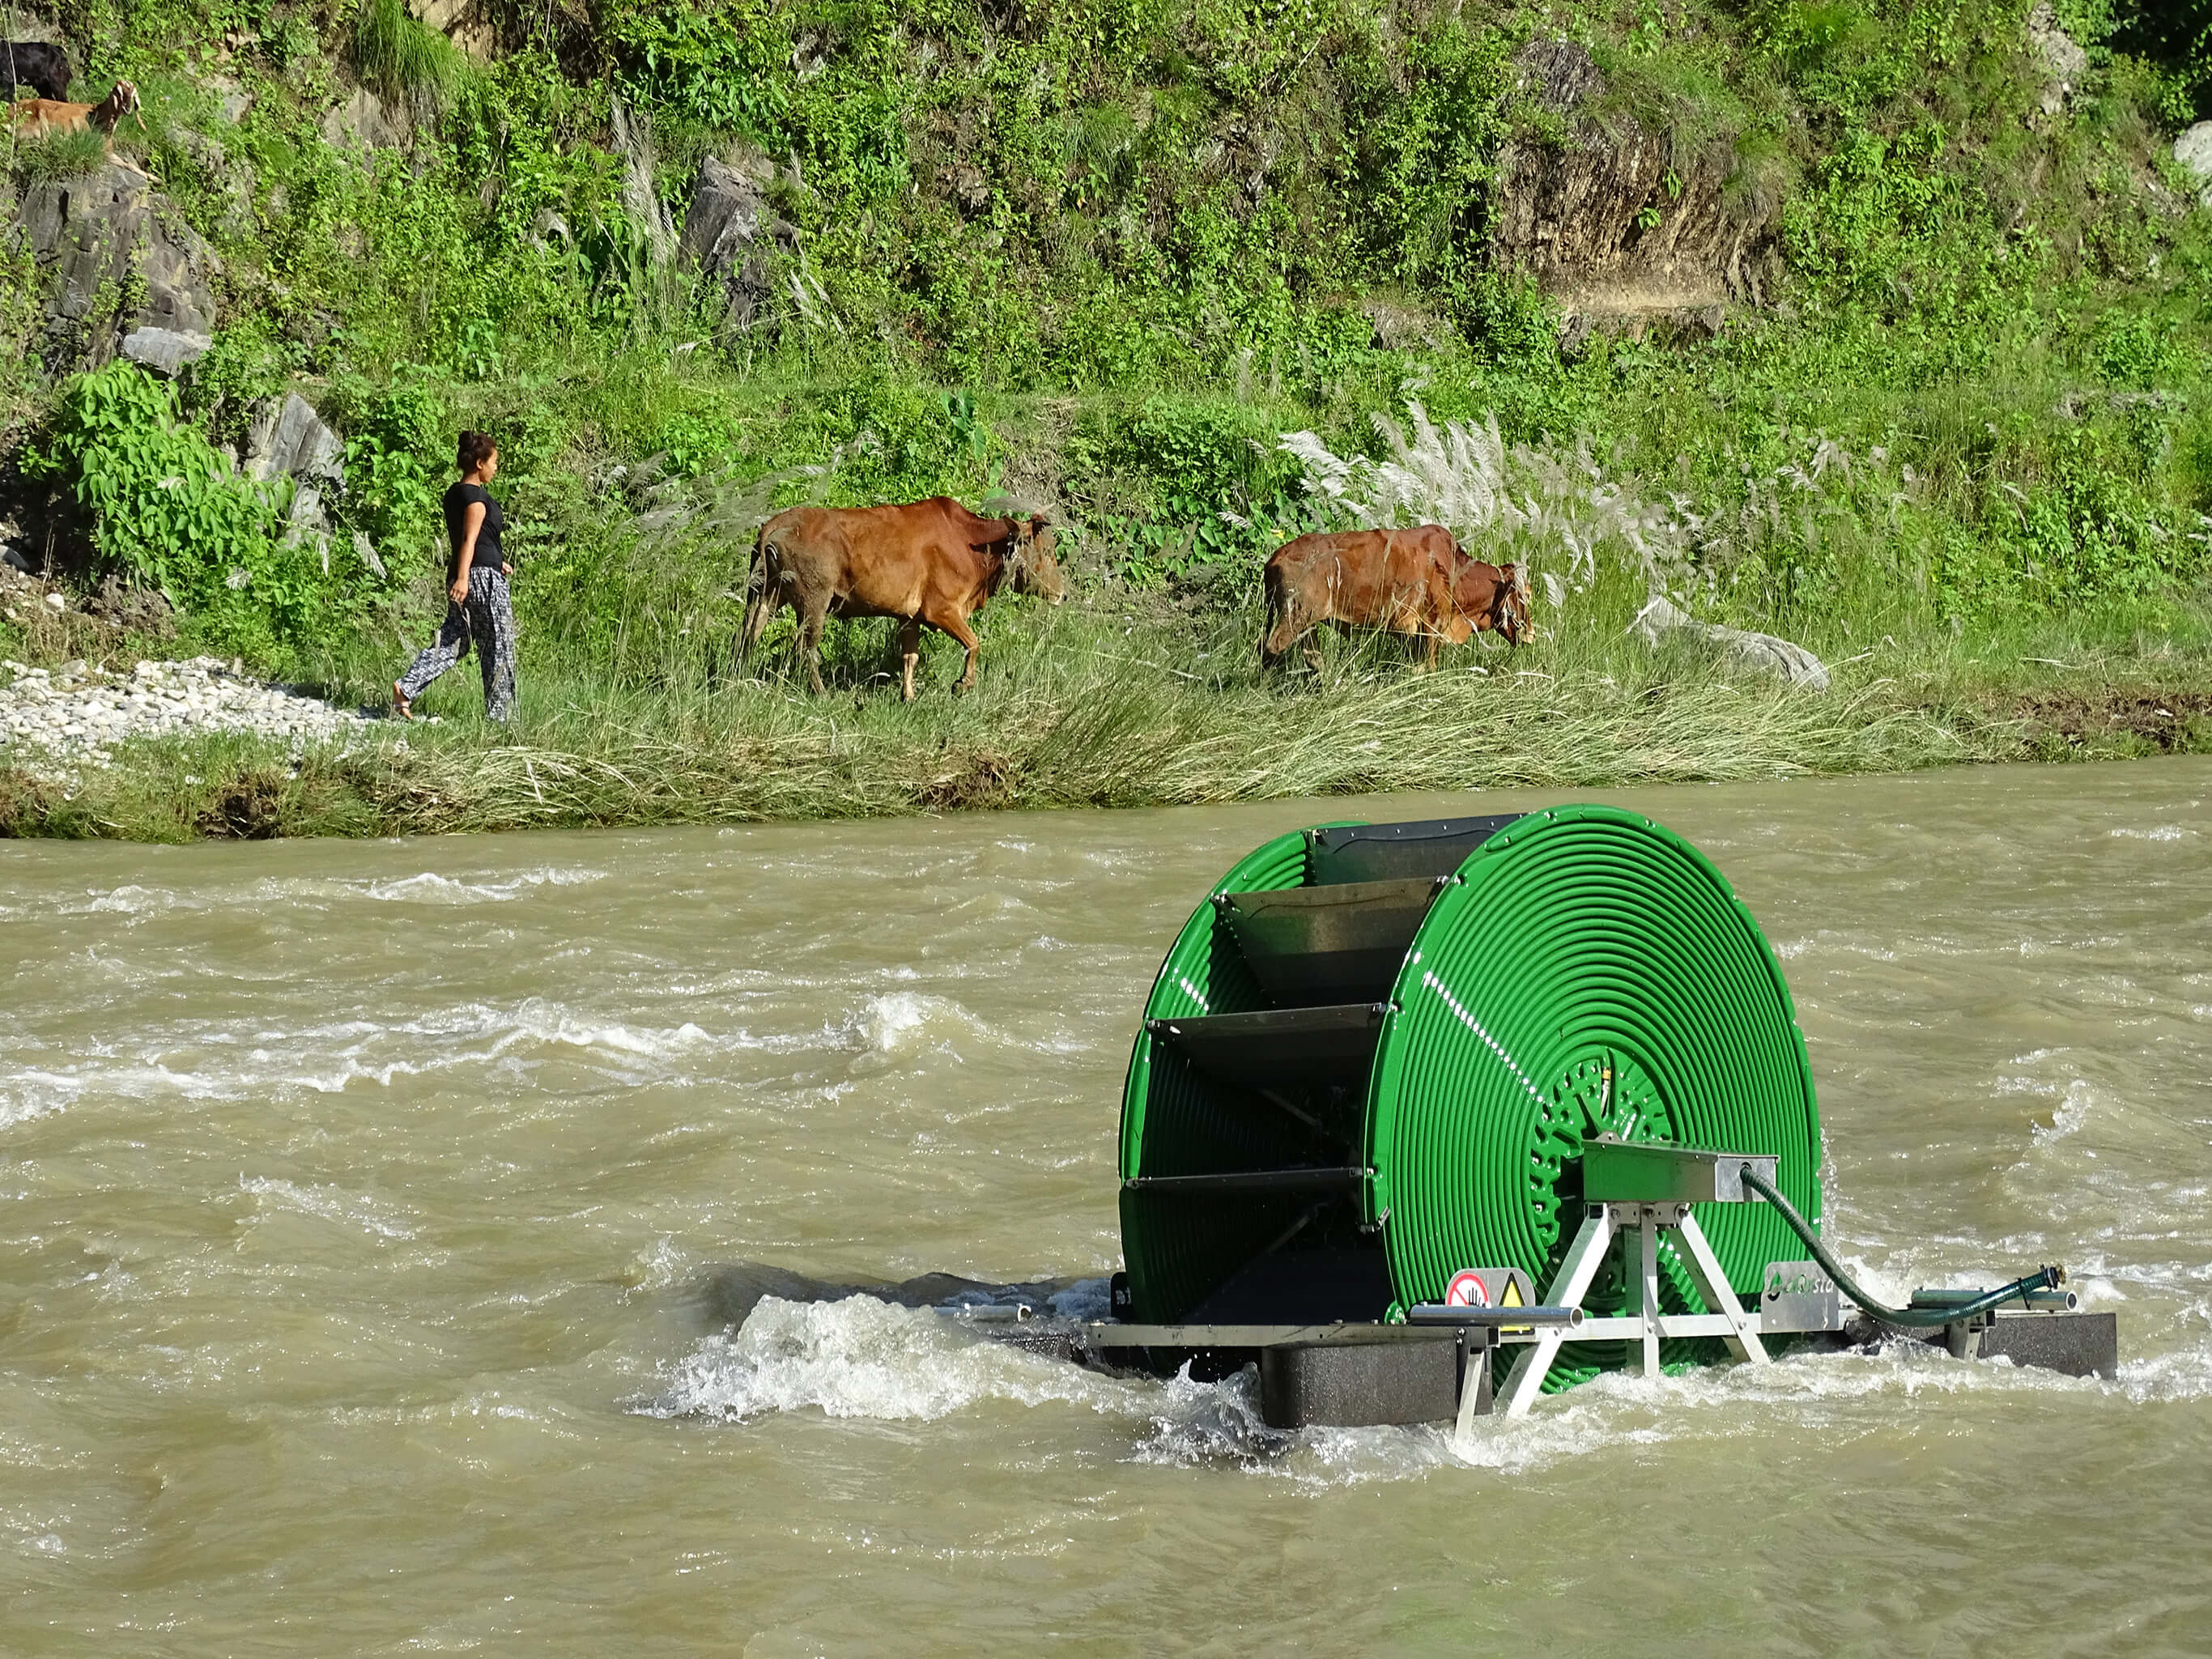 photo of water pump in river with woman and two cows walking on the far riverbank